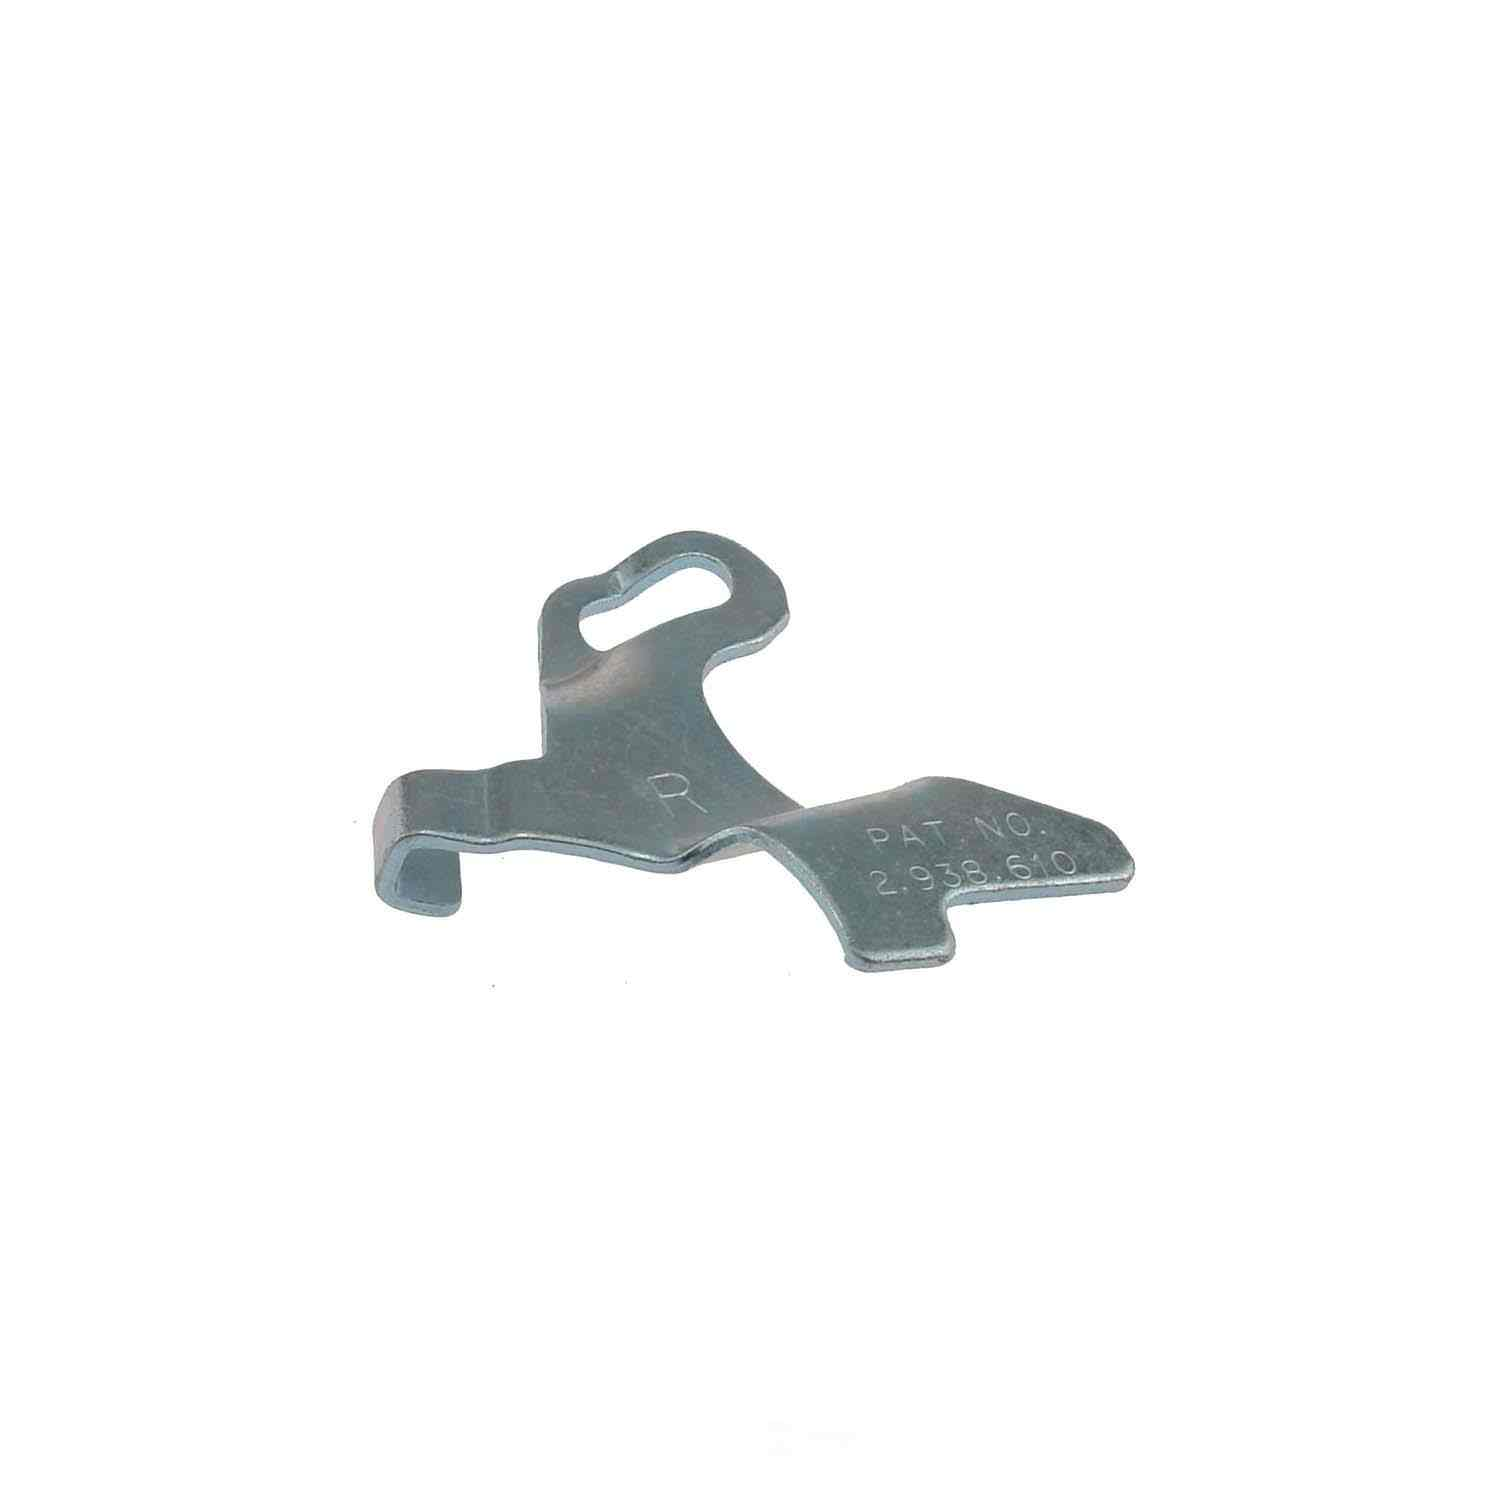 CARLSON QUALITY BRAKE PARTS - Drum Brake Adjusting Lever - CRL H2036